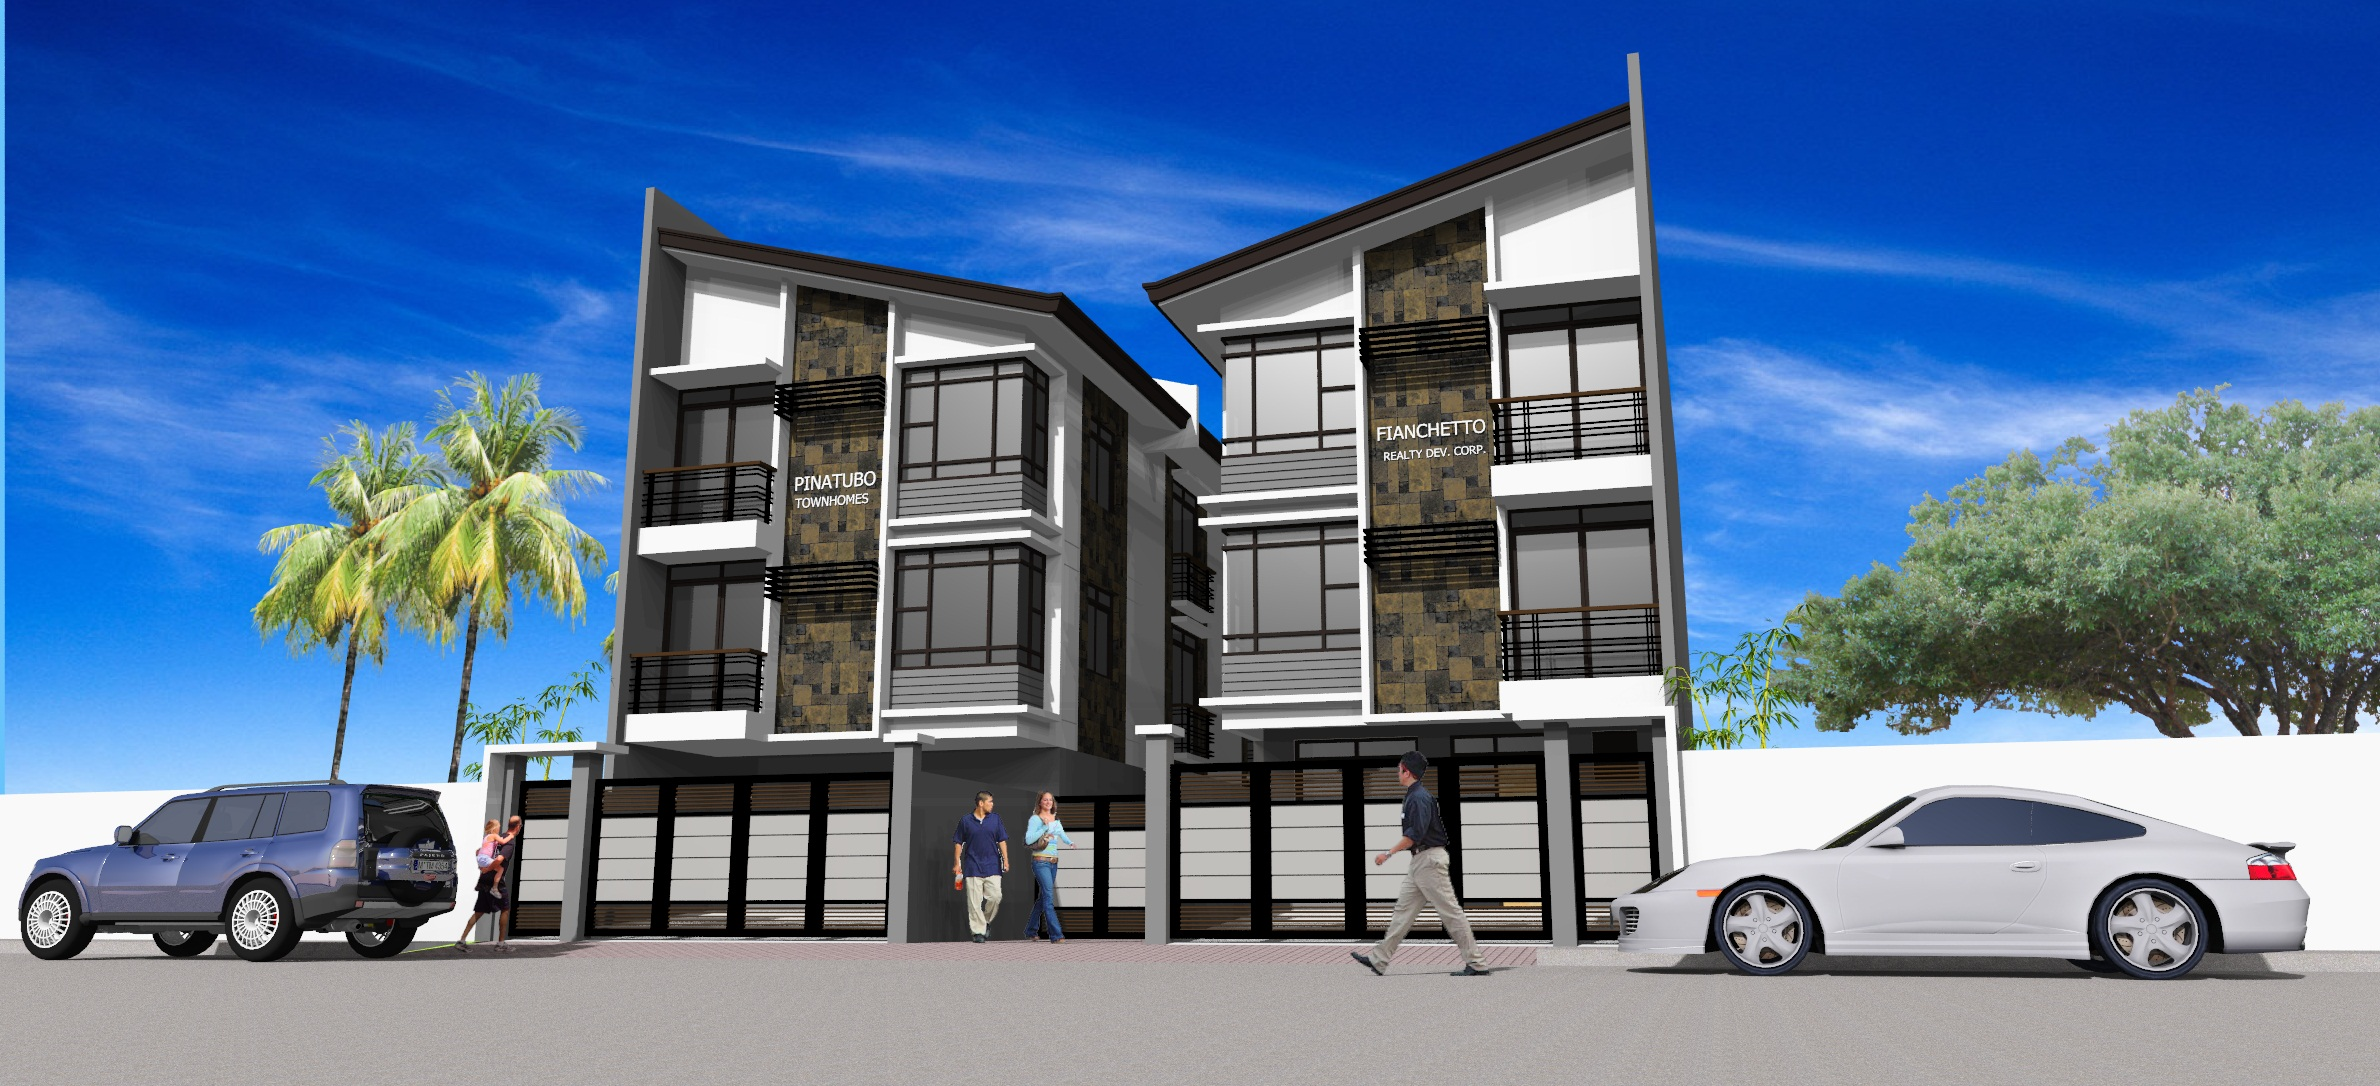 PINATUBO TOWNHOMES  4 bedroom 2 garage 2 powder room  For Sale House and Lot Mandaluyong City   Townhouse for sale near Makati City CBD House for sale in Mandaluyong City Near EDSA and Megamall